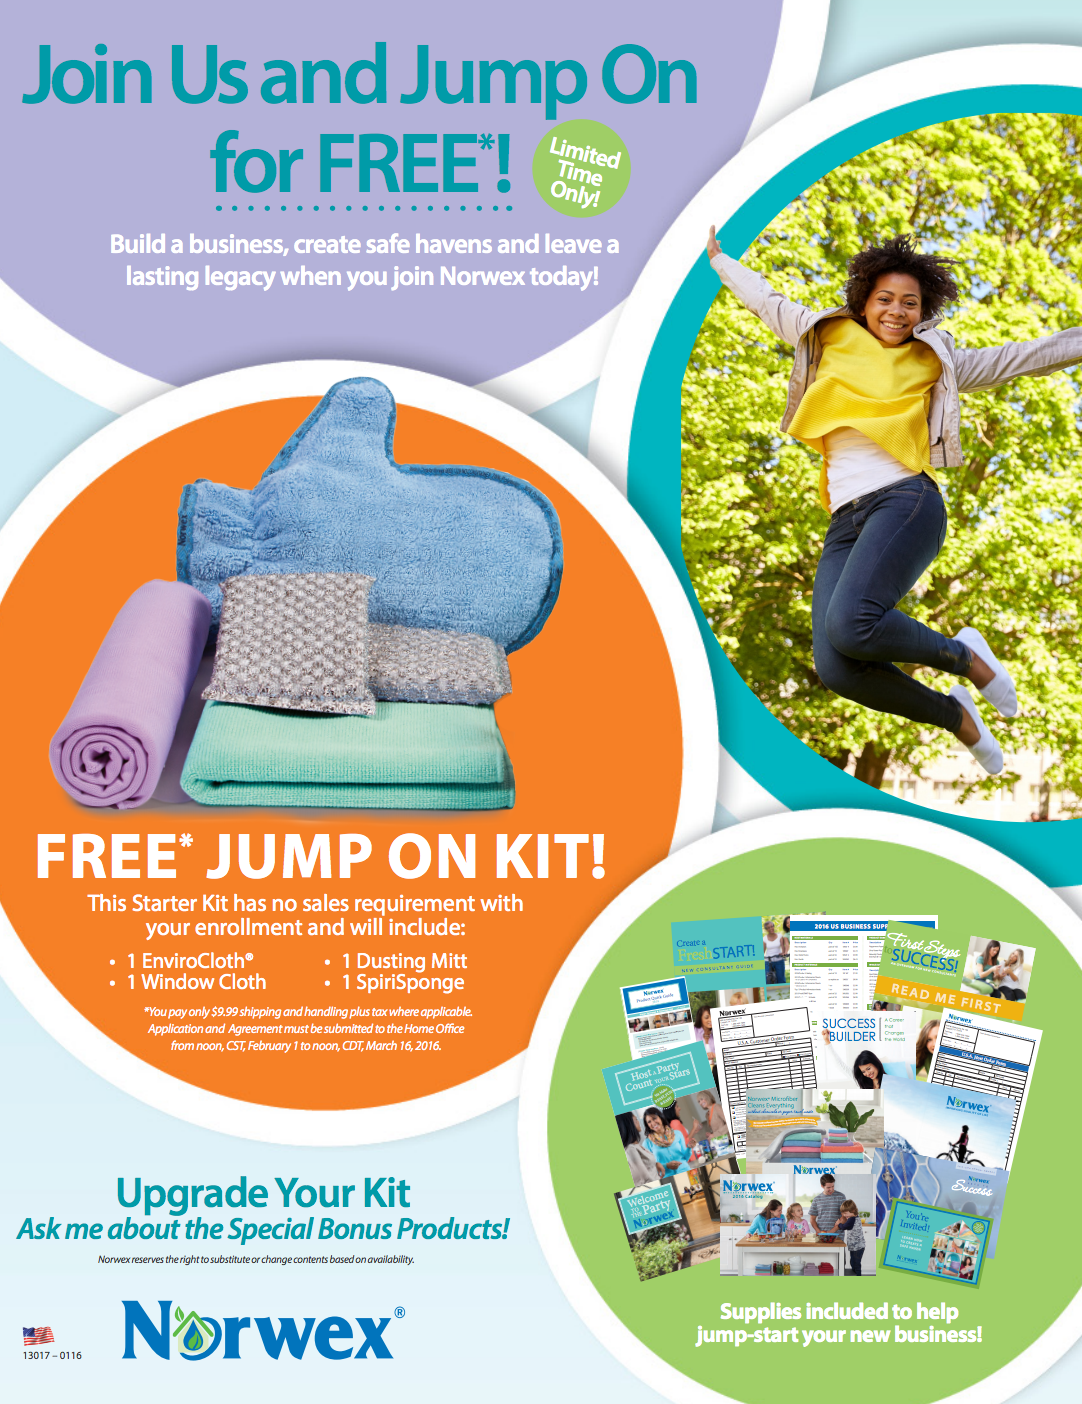 Join Norwex Now and Become A Consultant for Free!